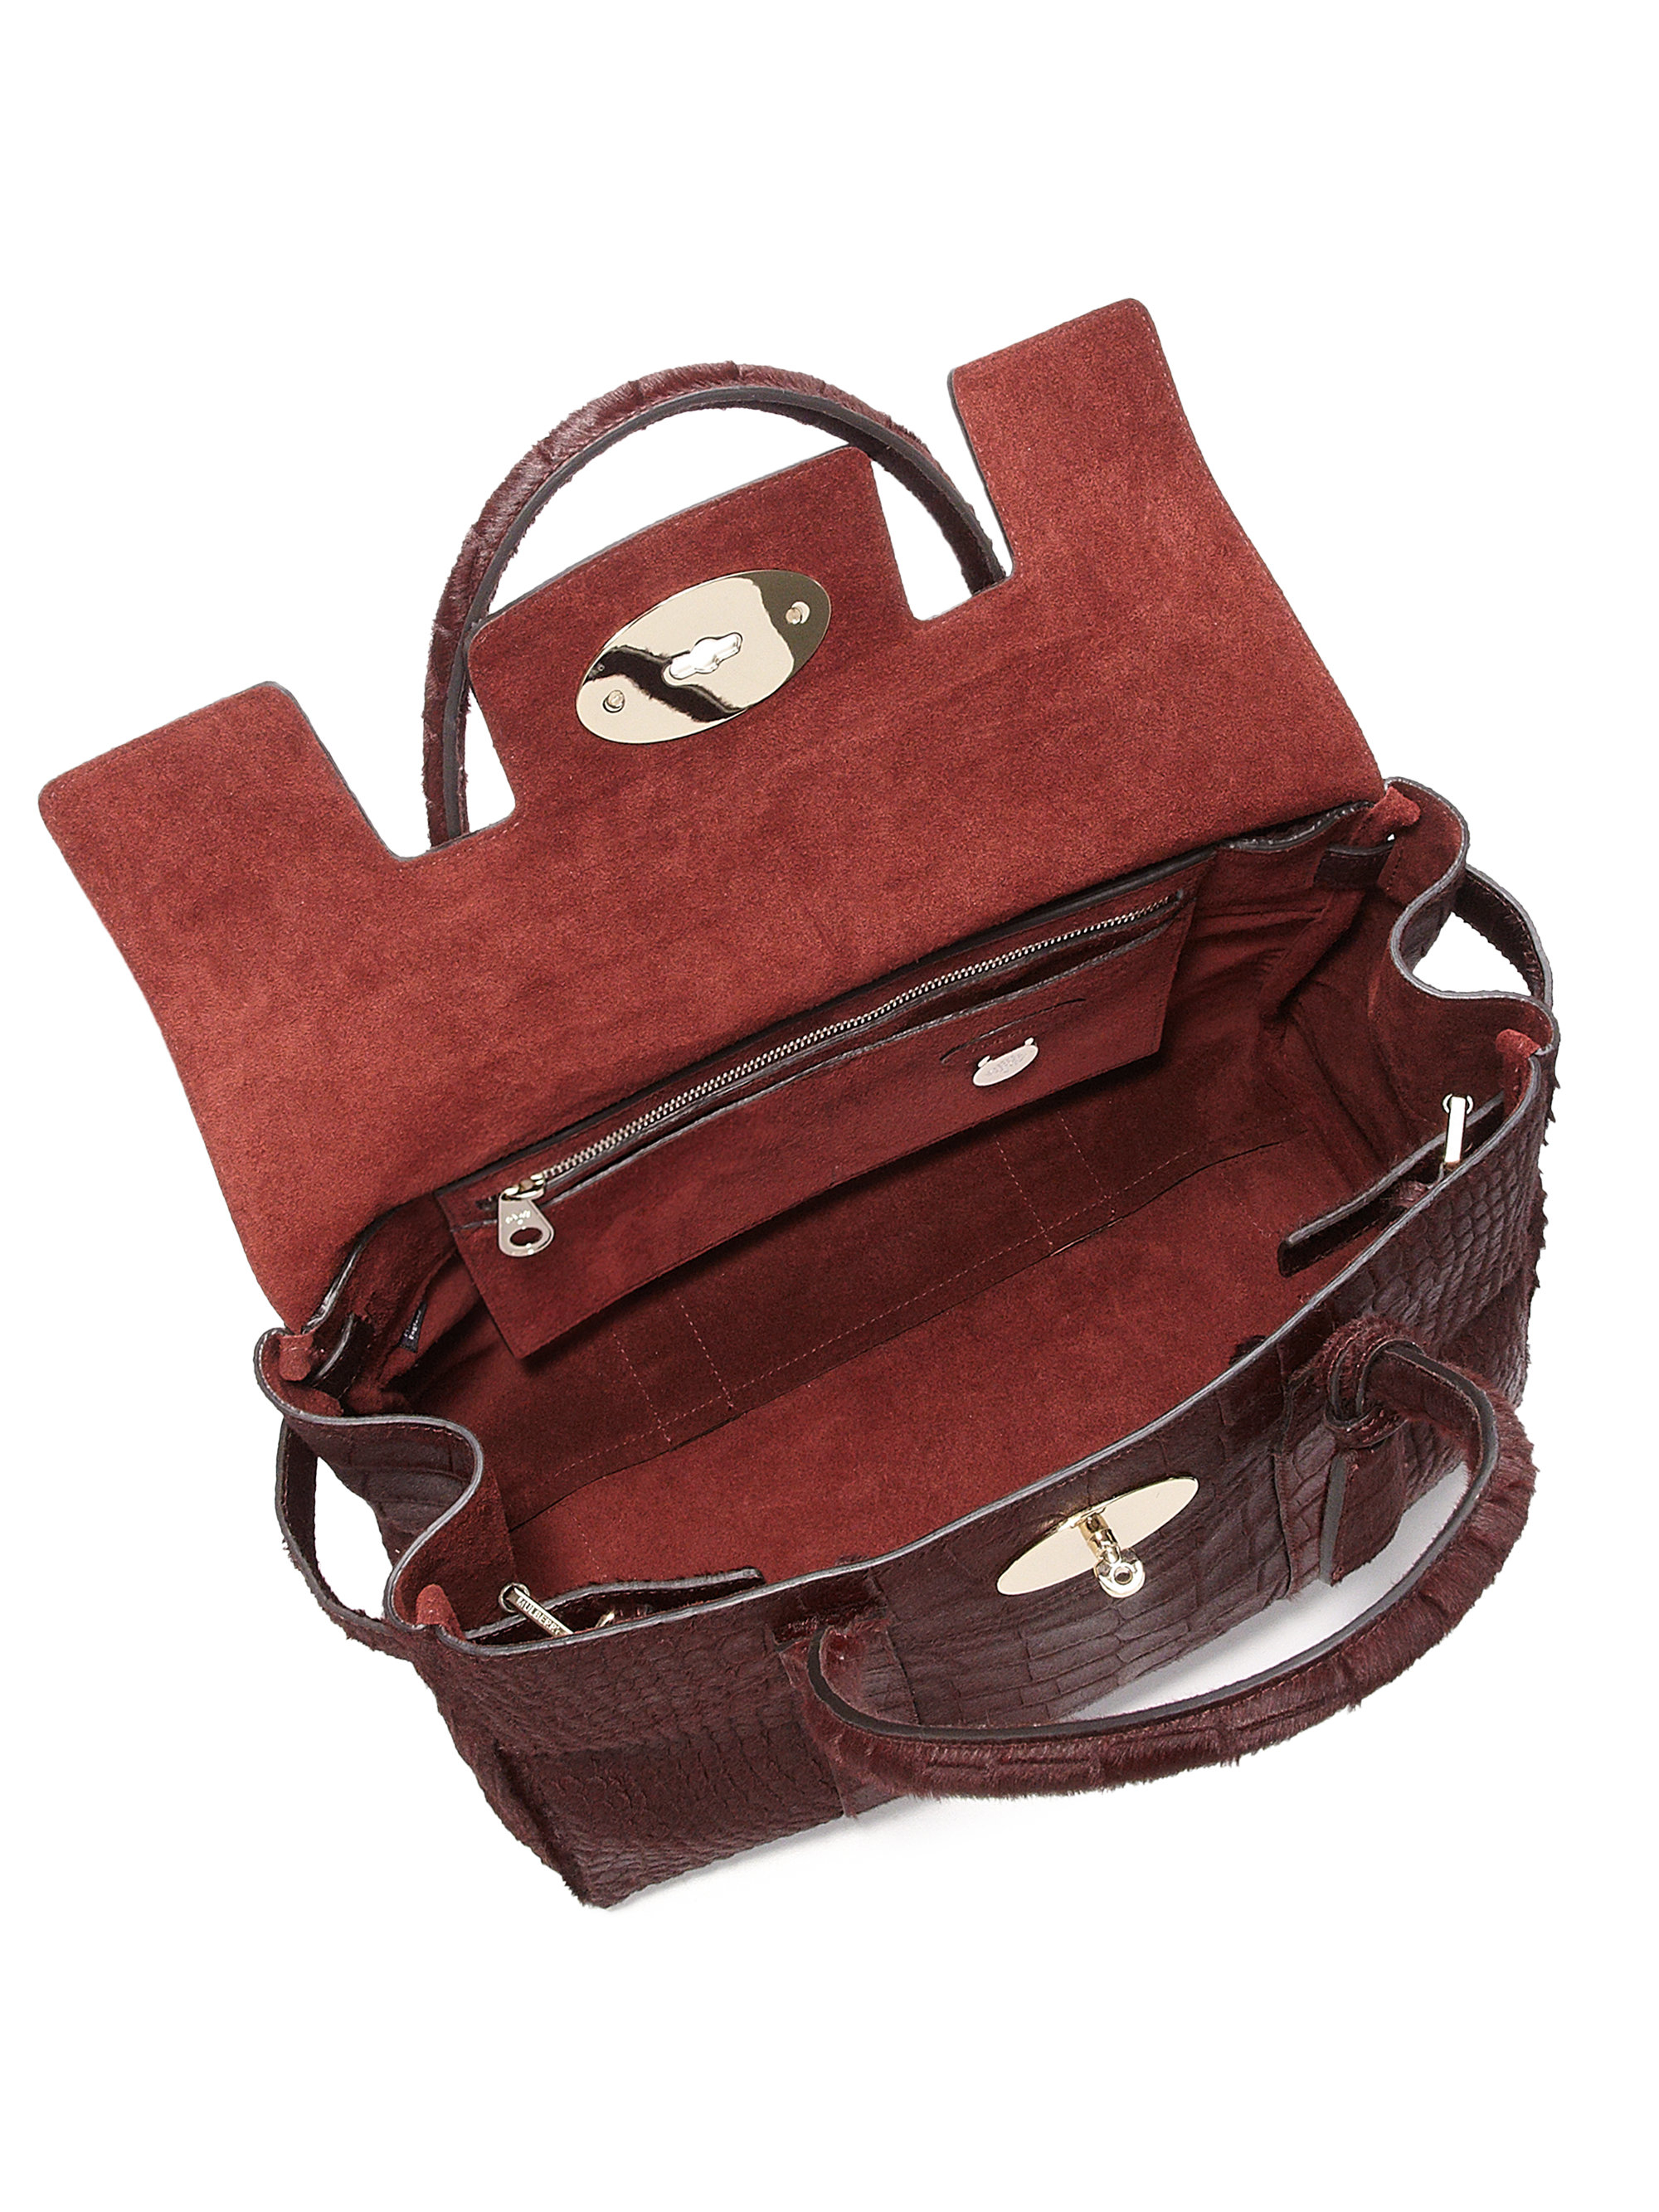 59cfca1fcded ... coupon lyst mulberry bayswater crocodile embossed calf hair satchel in  red 492d4 7c4b1